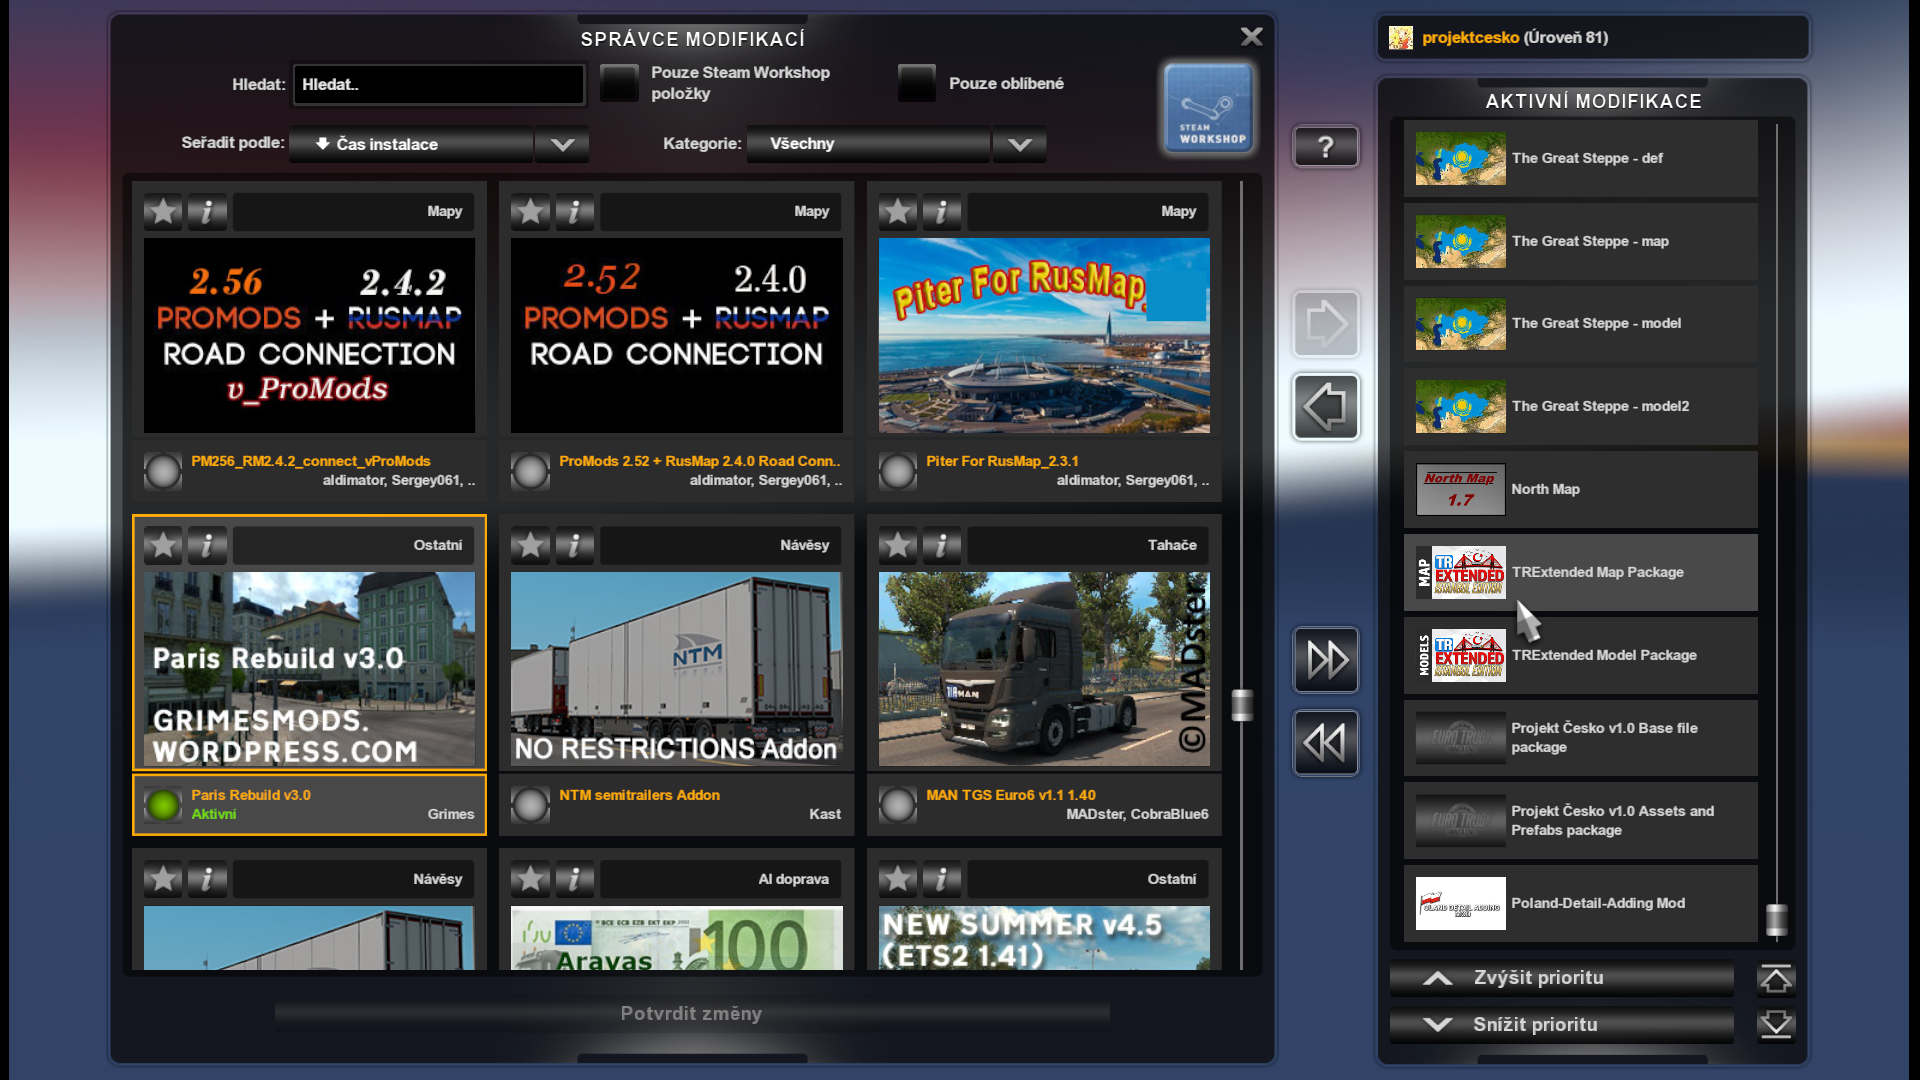 ets2_20210831_143153_00.png